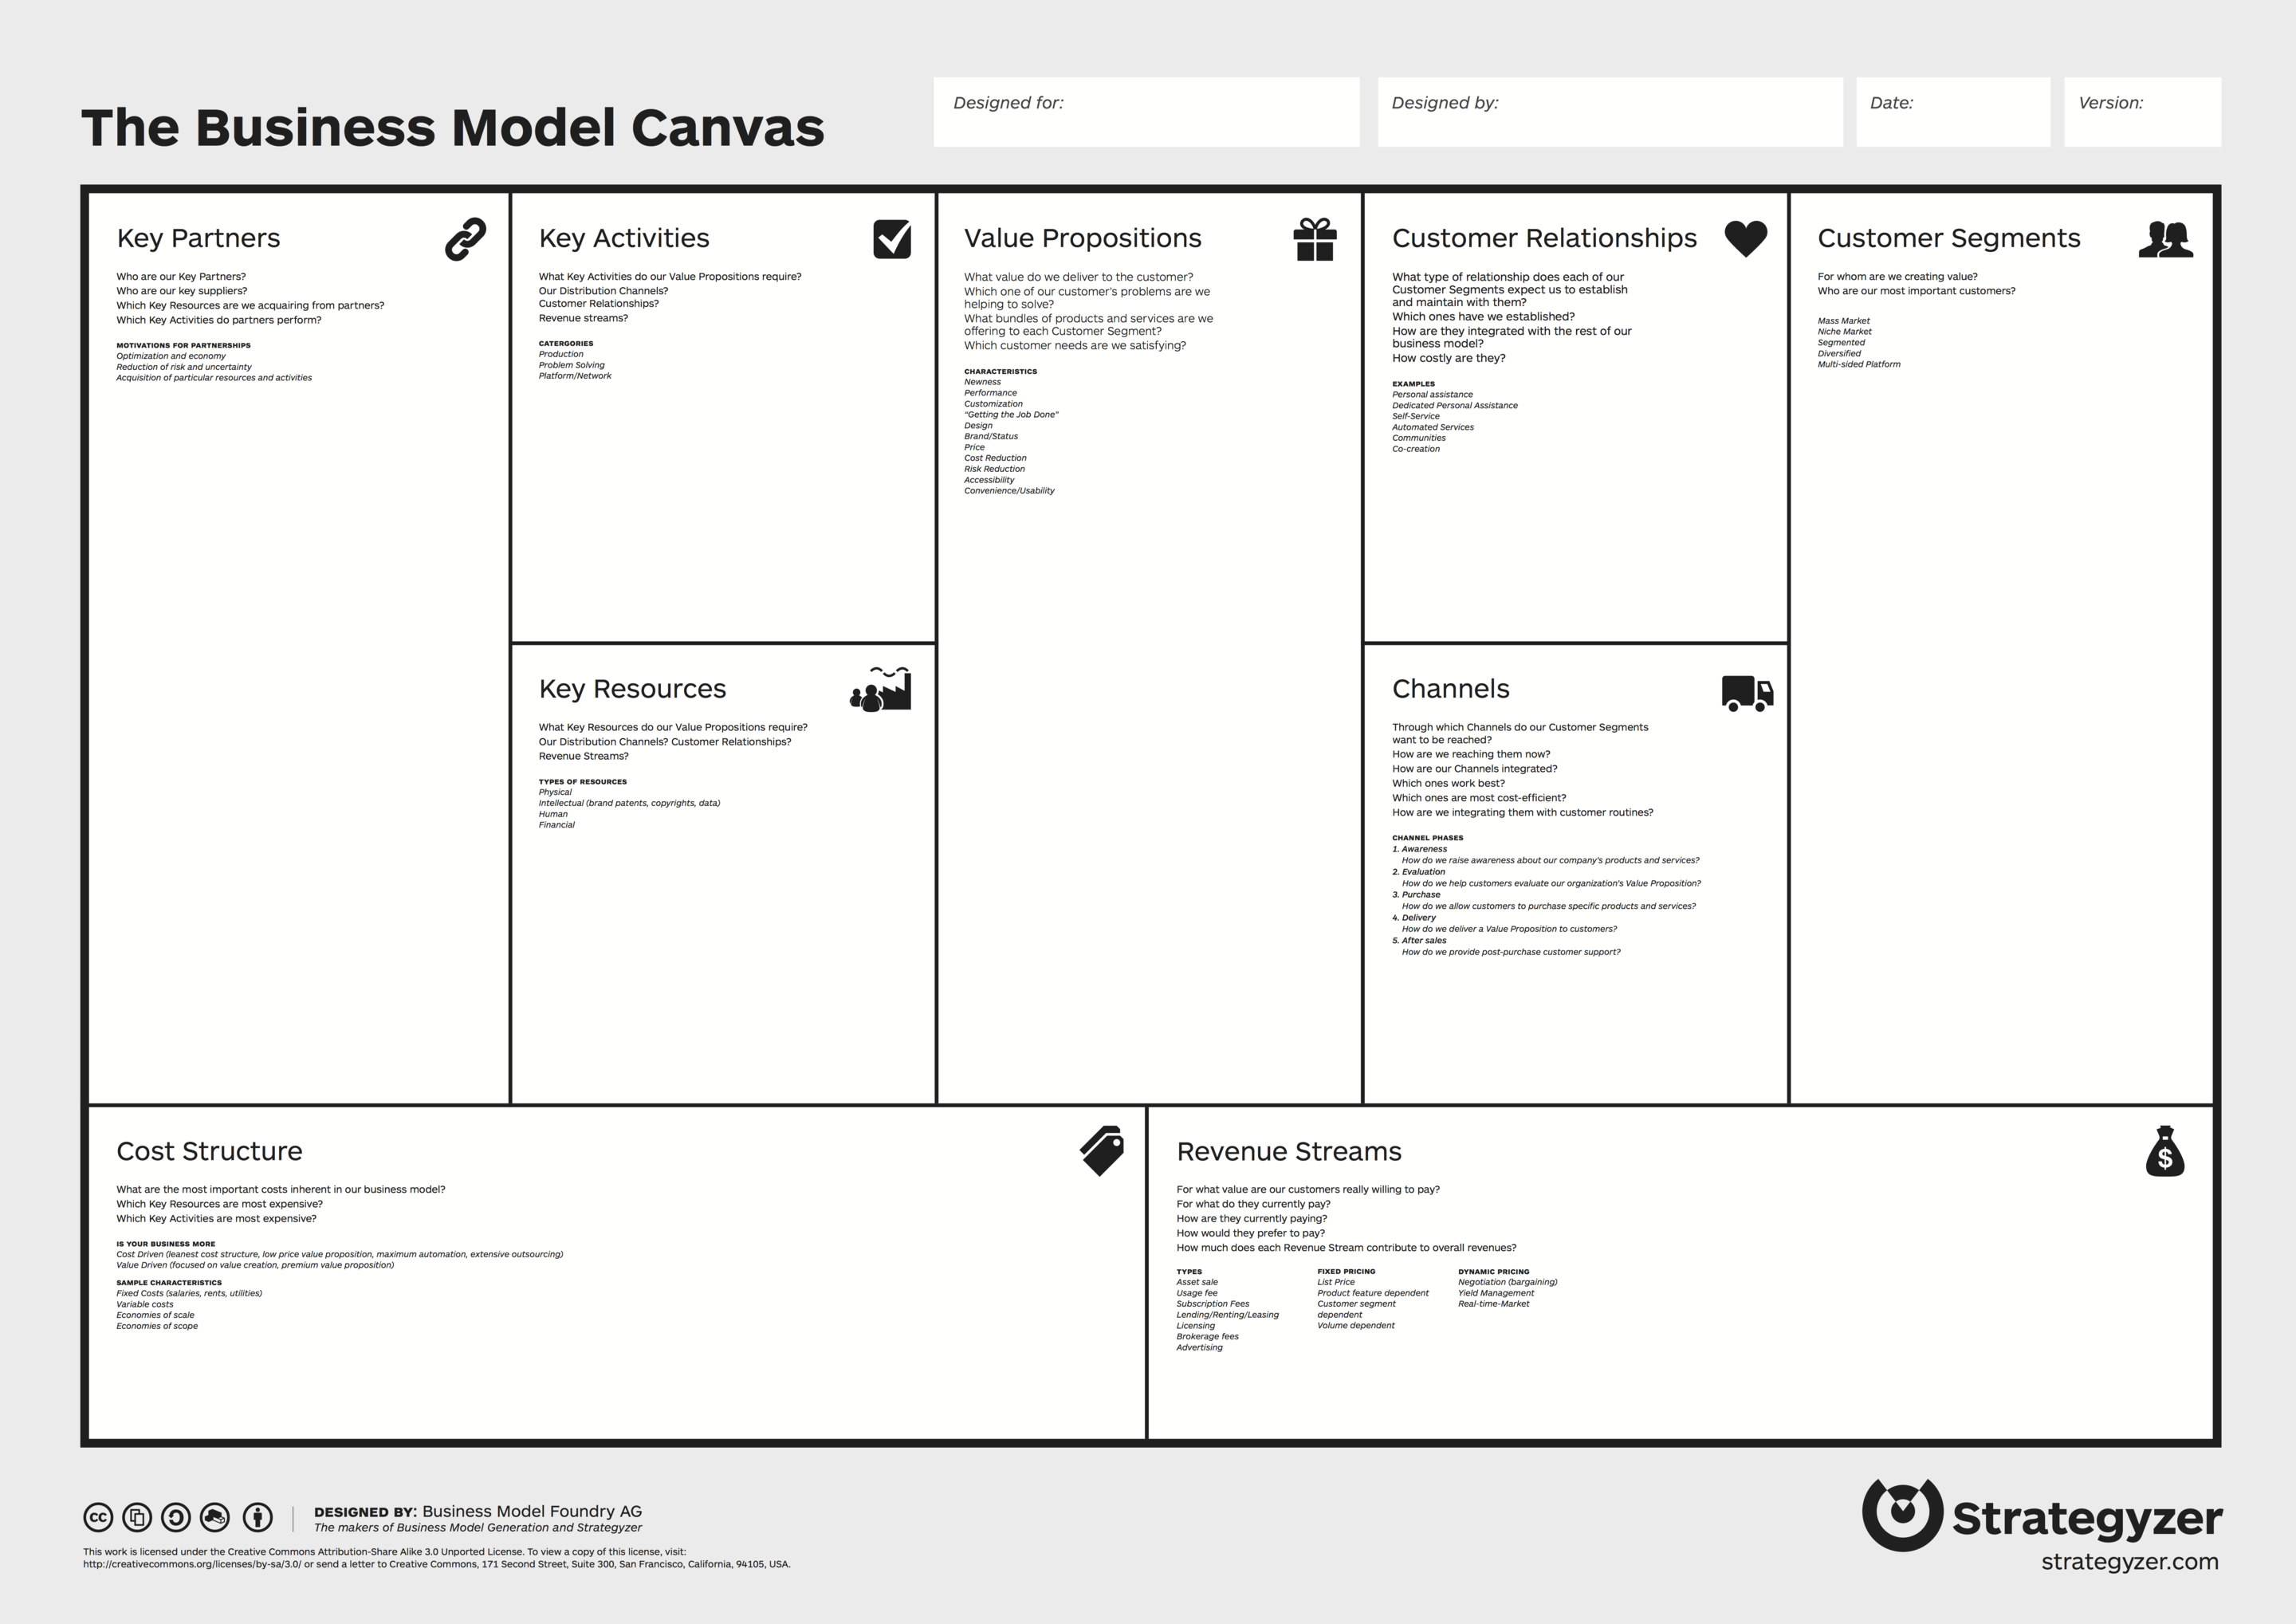 https://upload.wikimedia.org/wikipedia/commons/thumb/1/10/Business_Model_Canvas.png/2880px-Business_Model_Canvas.png